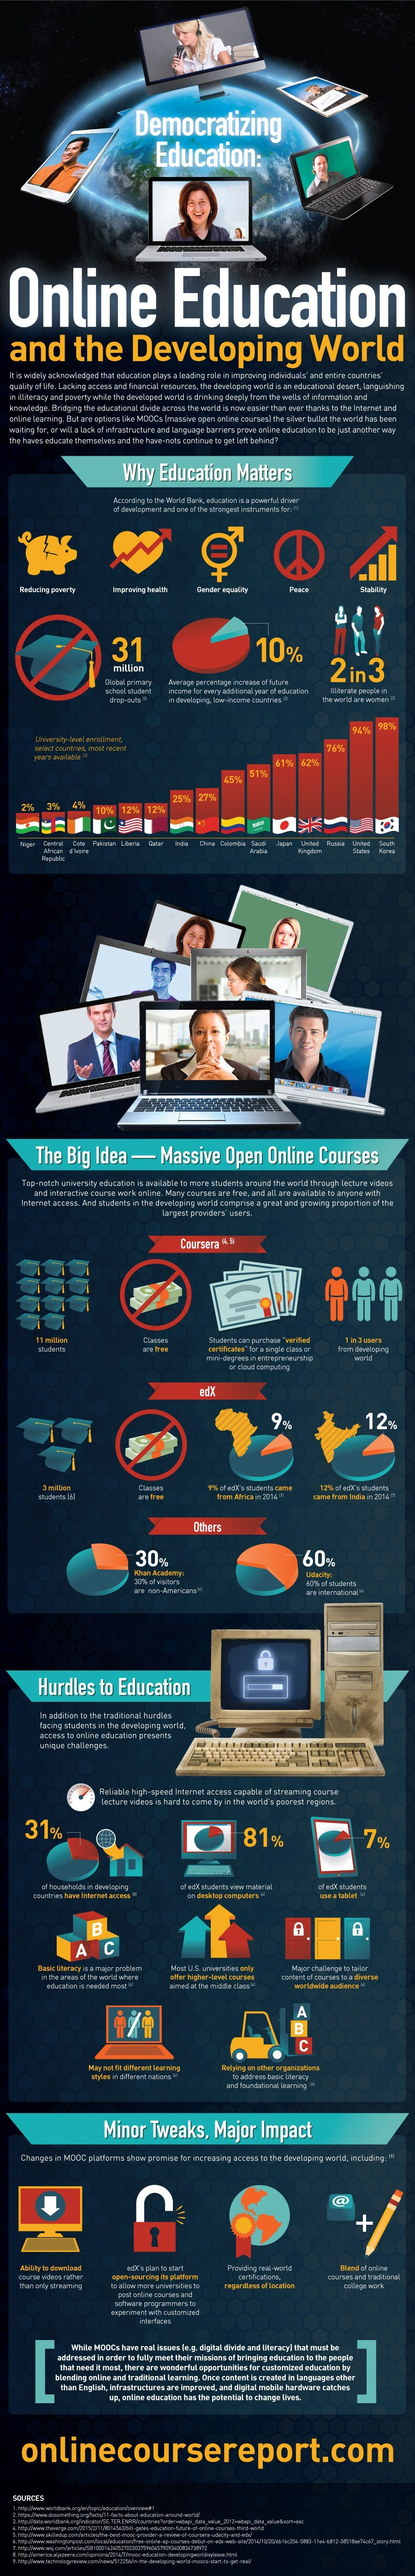 Online Education and the Developing World